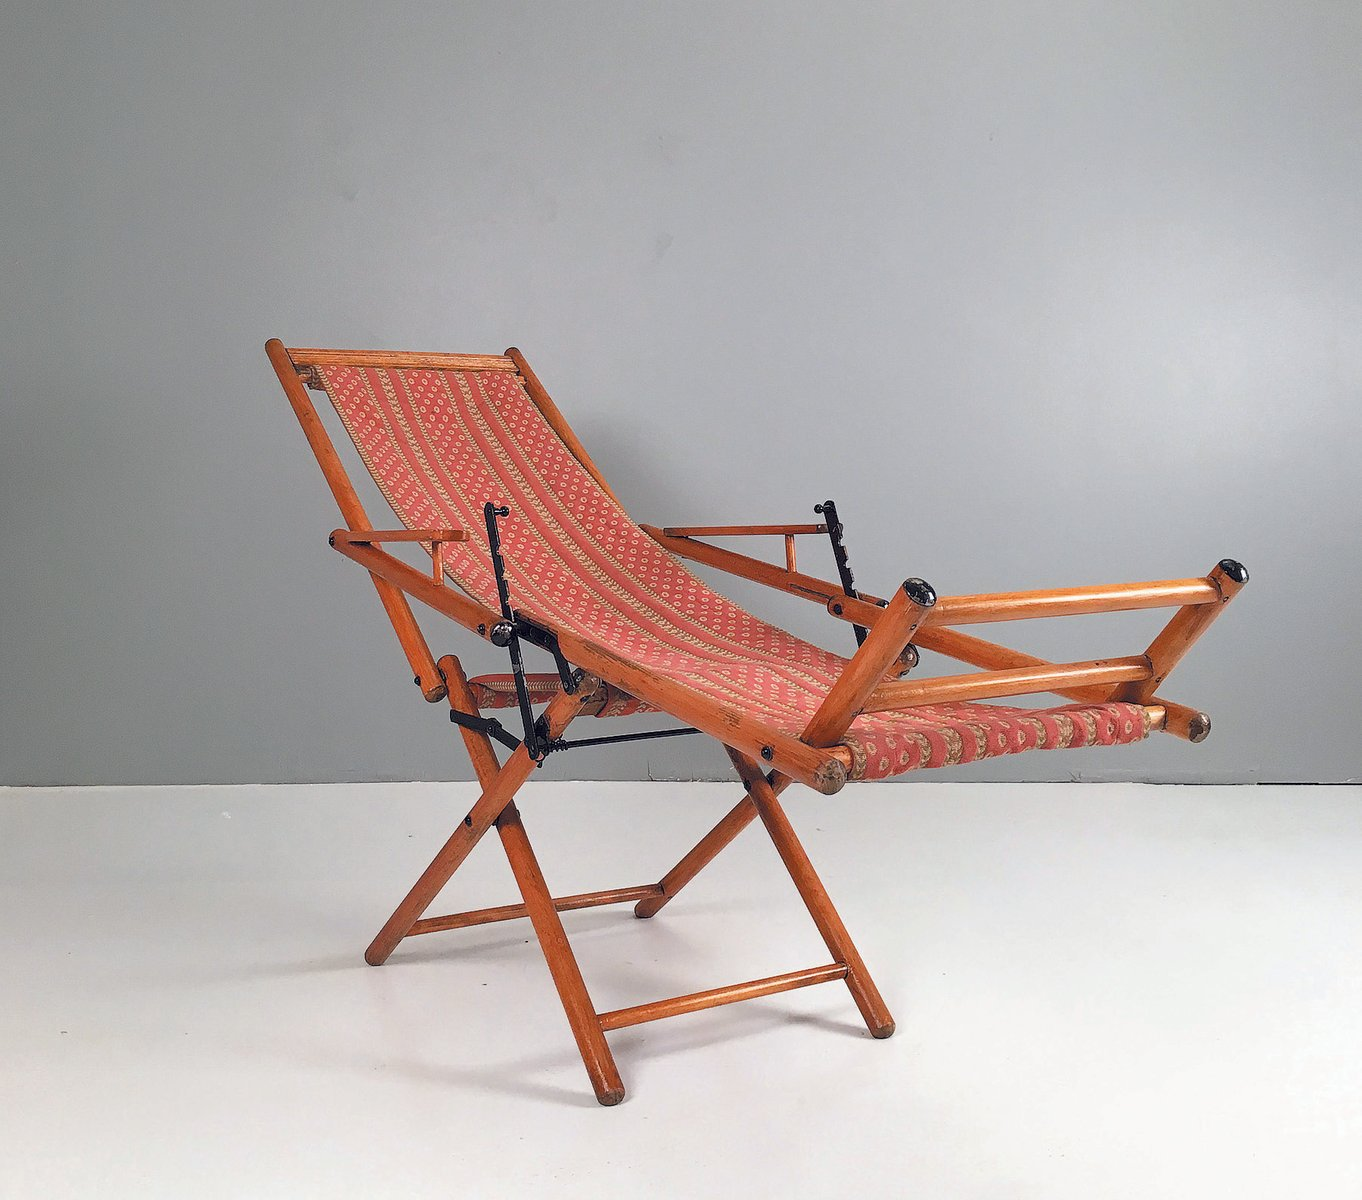 Antique Foldable Deck Chair - Antique Foldable Deck Chair For Sale At Pamono